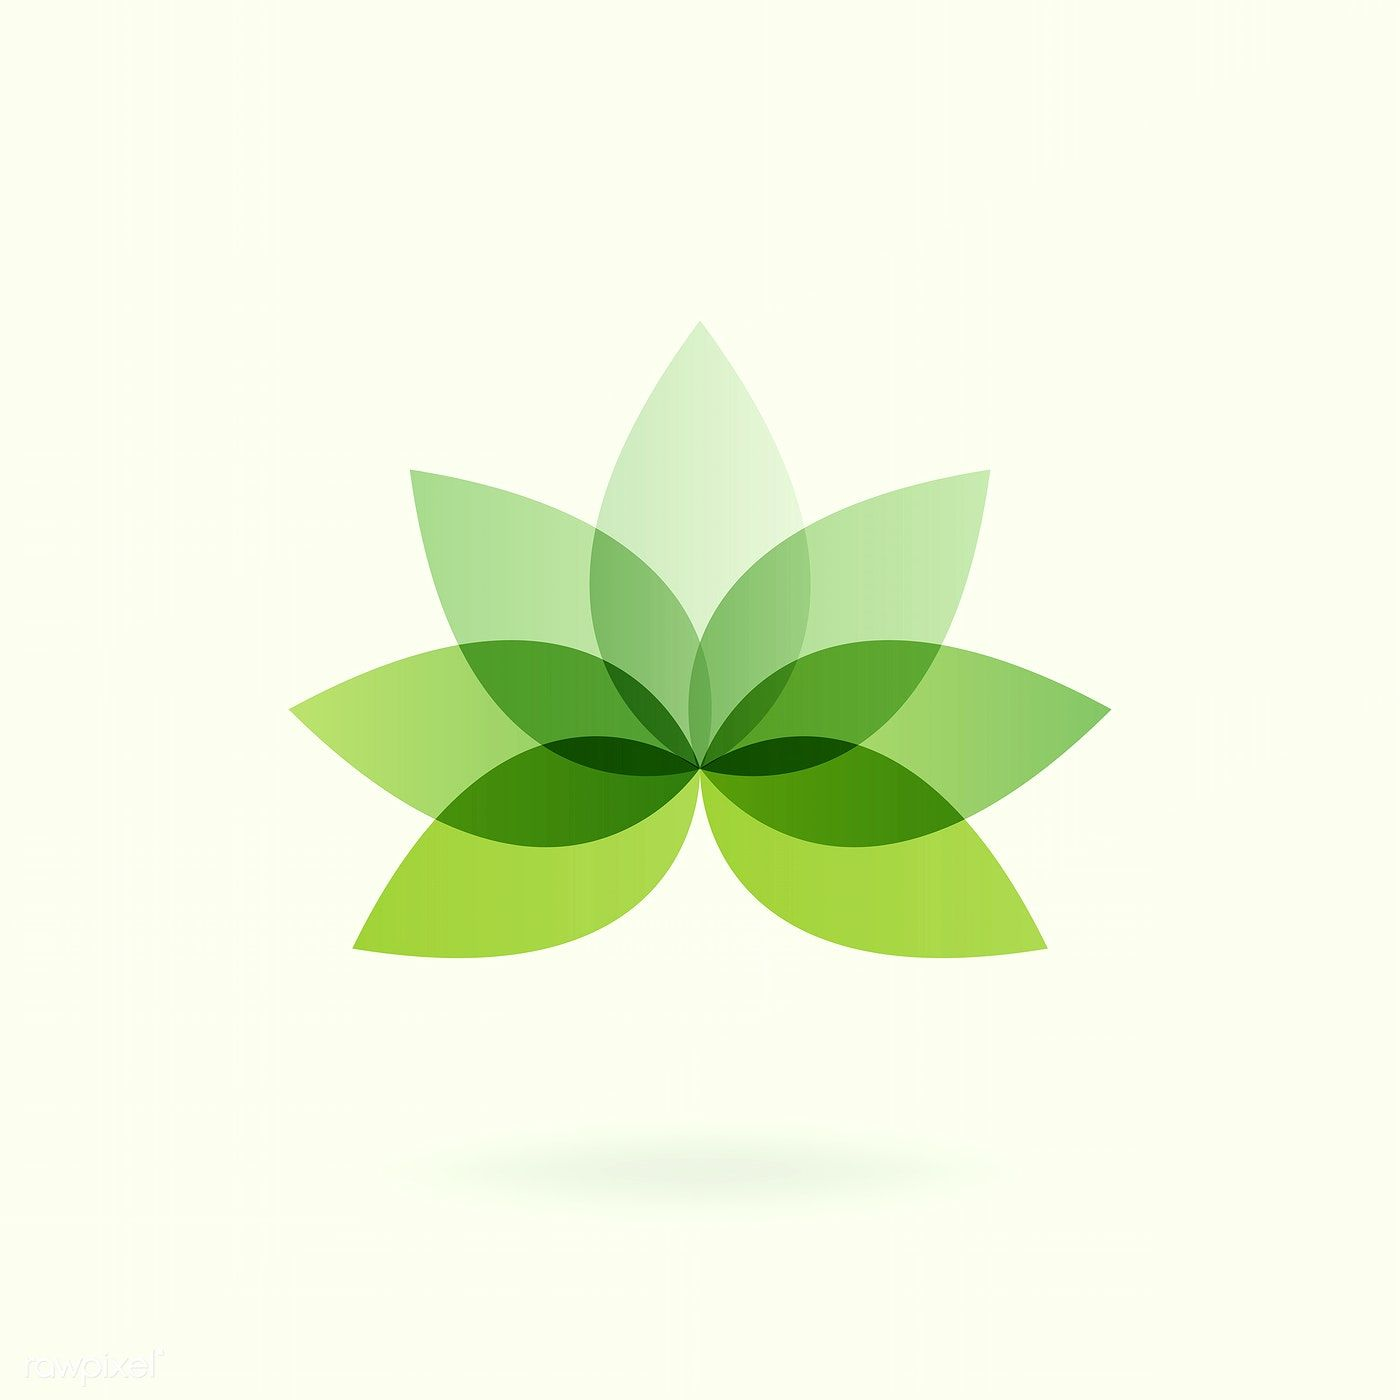 plant symbol environmental conservation vector free image by rawpixel com plant logos vector free environmental conservation plant symbol environmental conservation